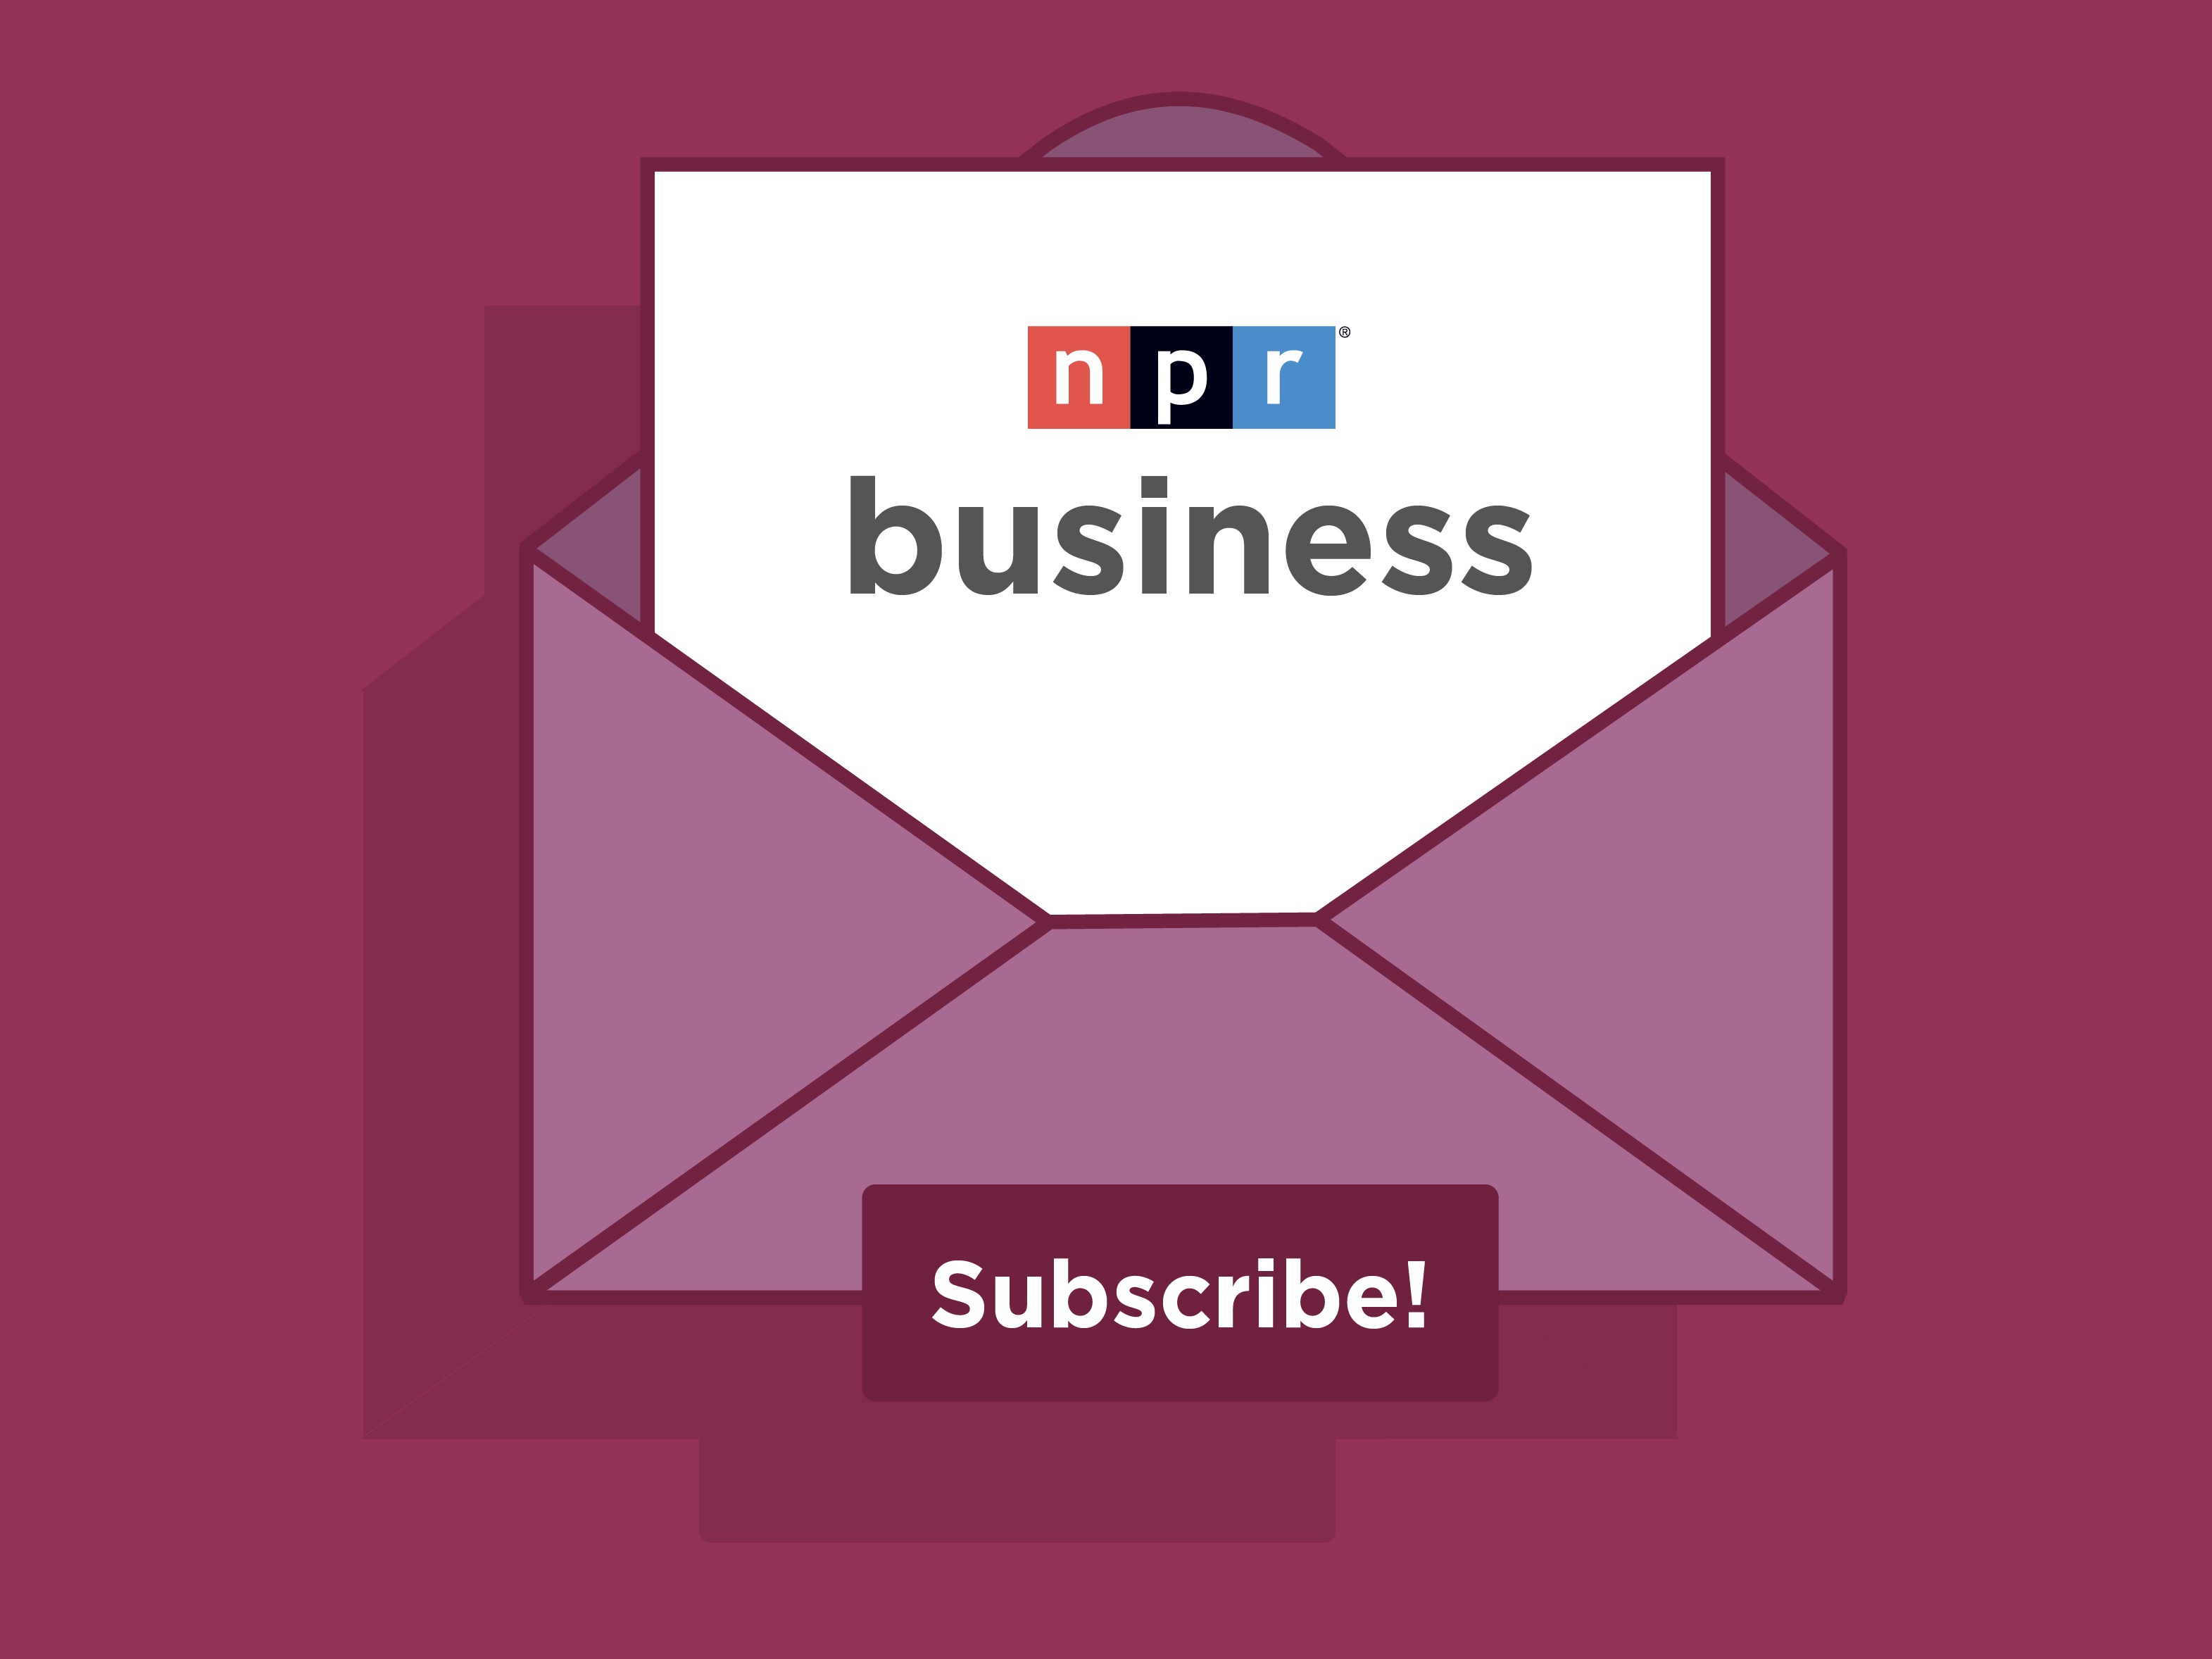 Subscribe To The NPR Business Newsletter